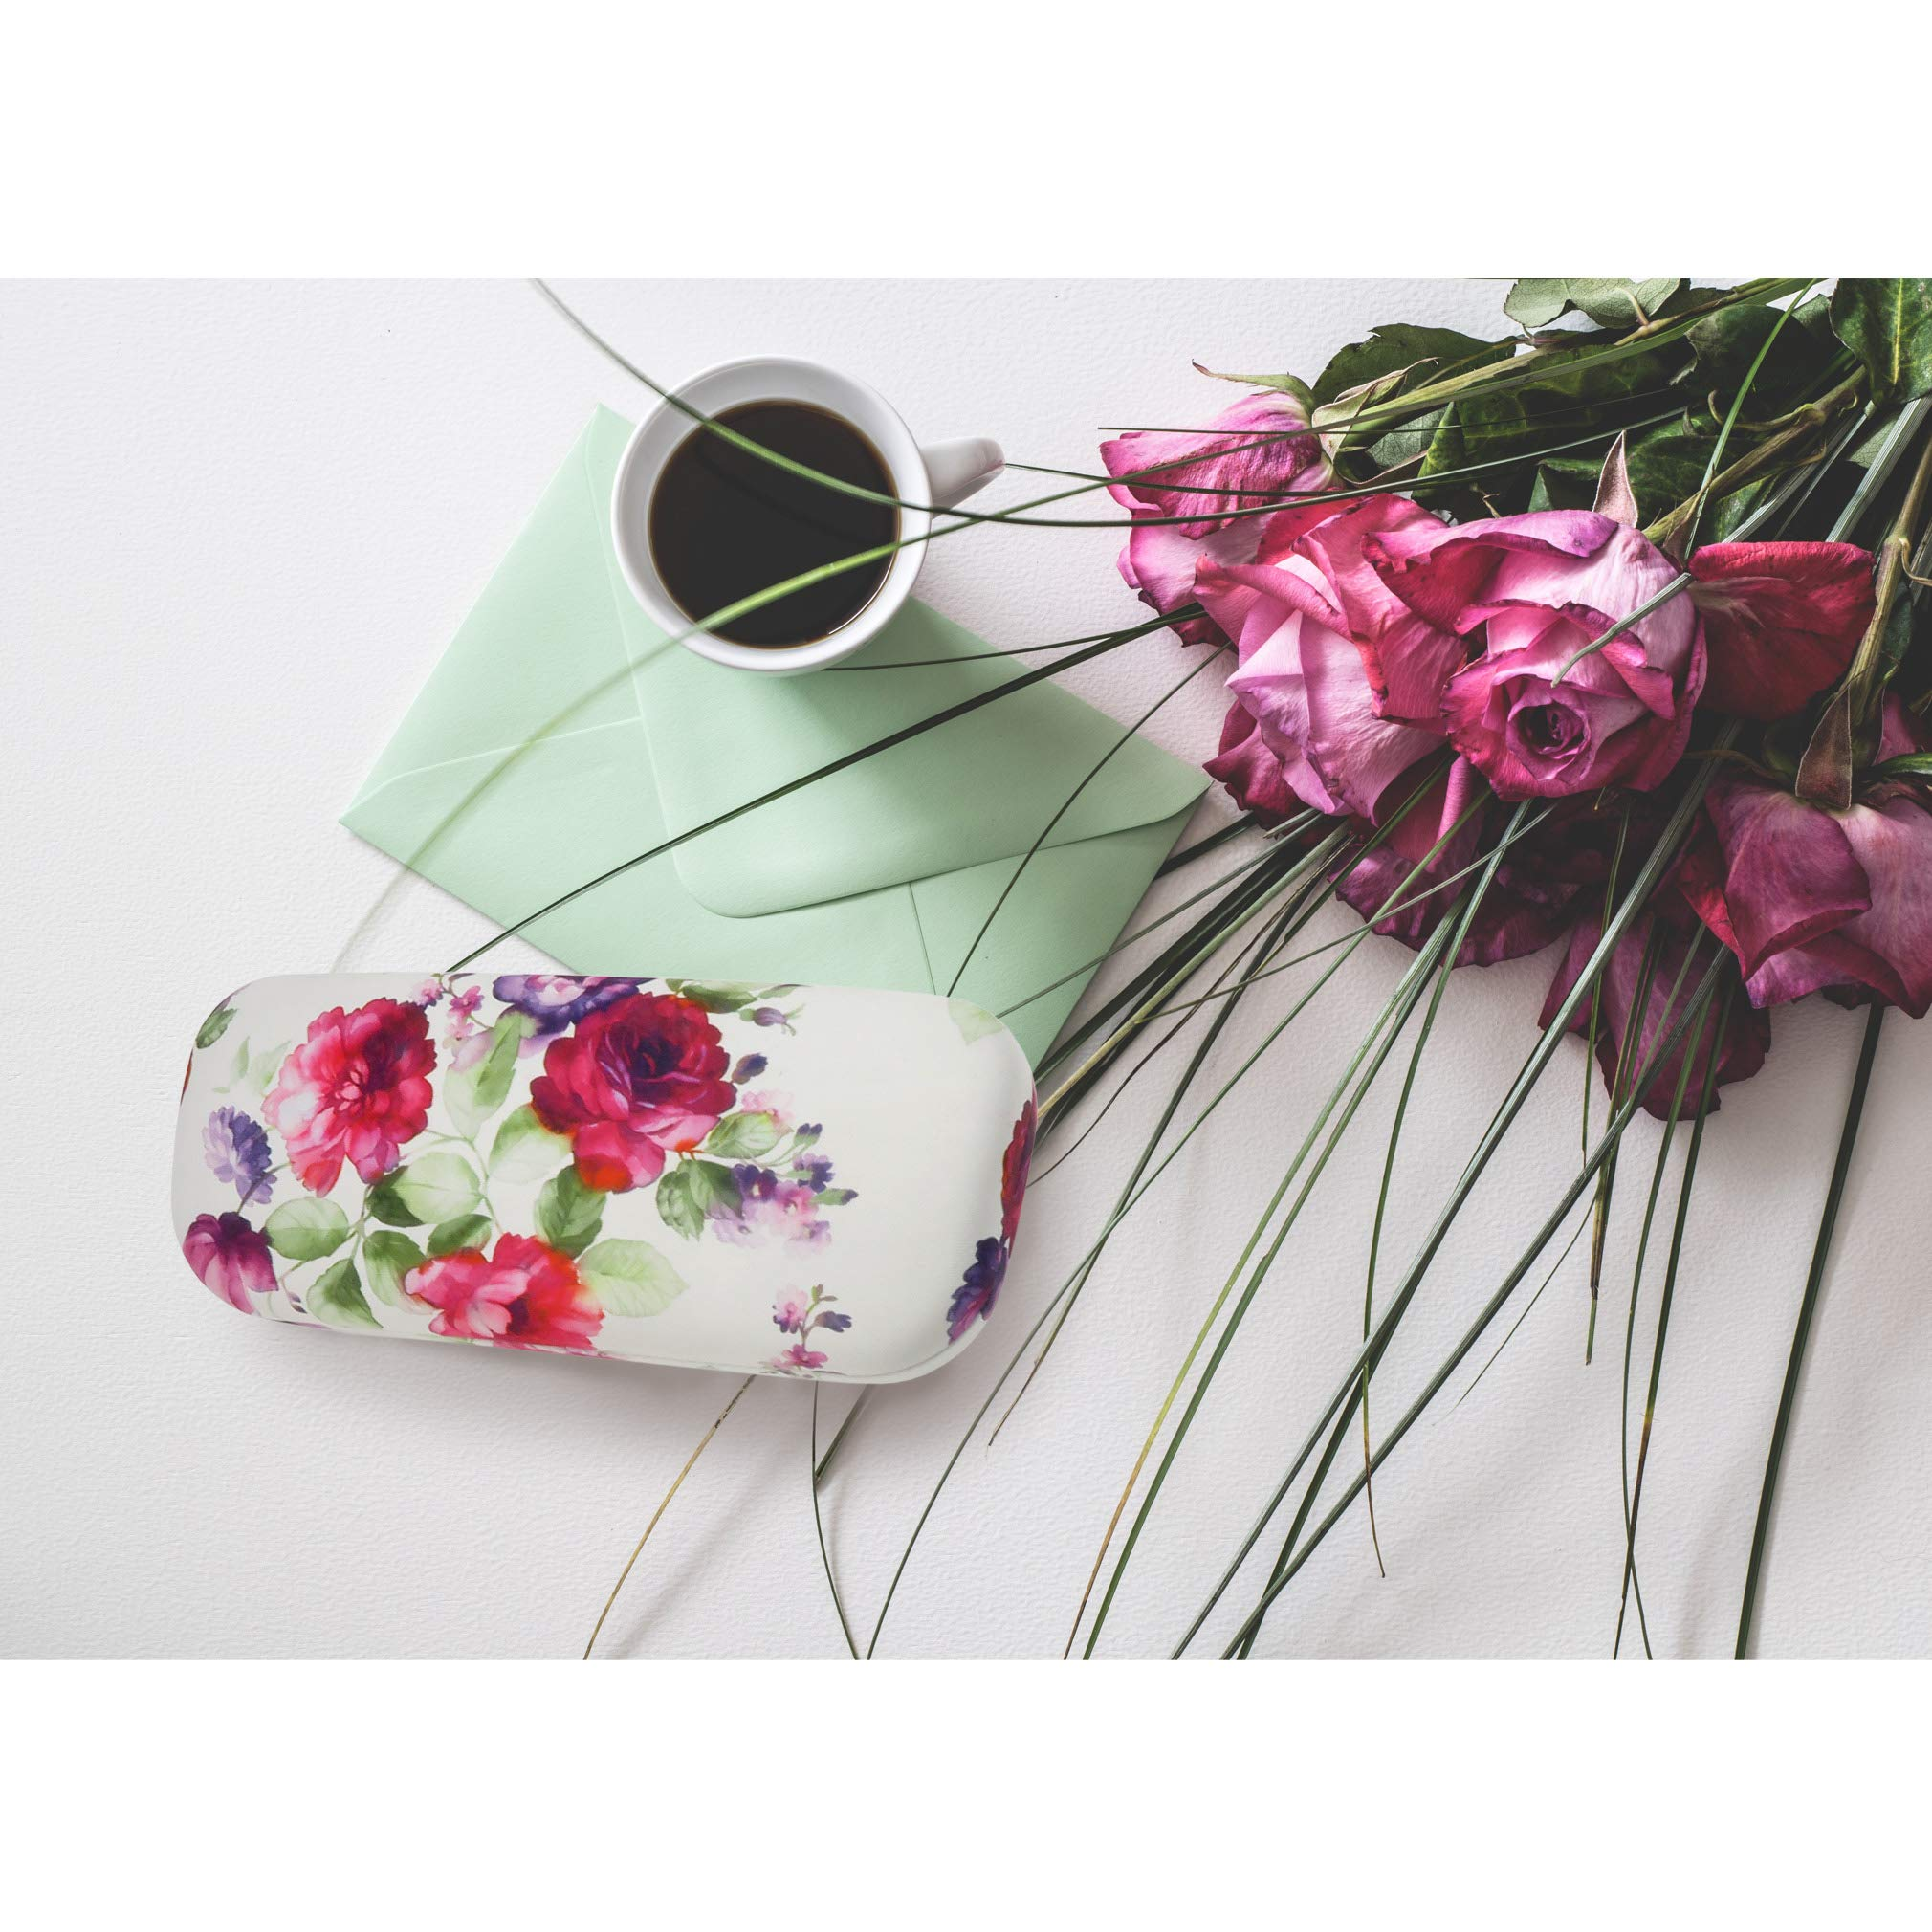 Floral Hard Shell Eyeglass Case for women Medium Sunglasses case with Cleaning Cloth by Rachel Rowberry (AS126 Cranberry Rose) by MyEyeglassCase (Image #4)